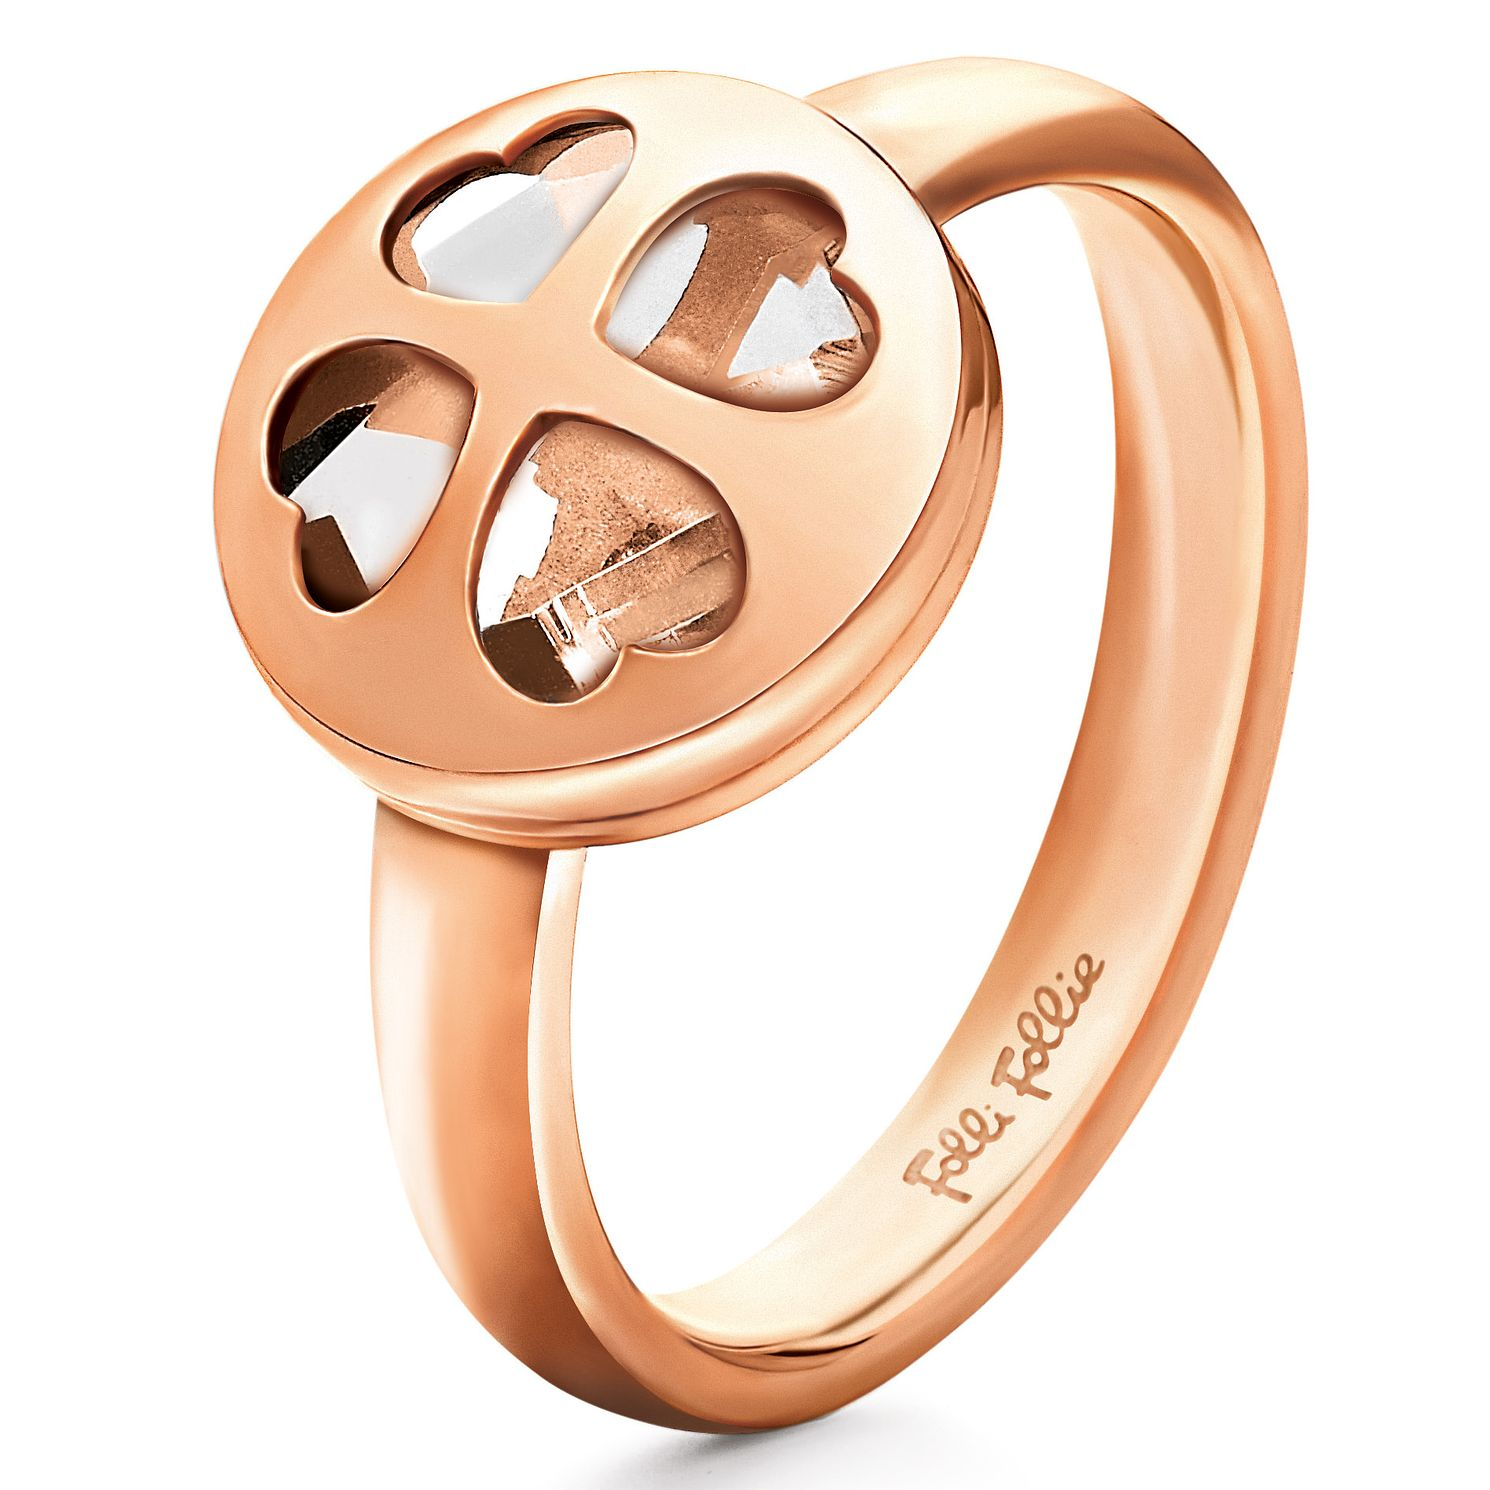 Folli Follie Heart4Heart Rose Gold-Plated Ring Size O 1/2 - Product number 2542617